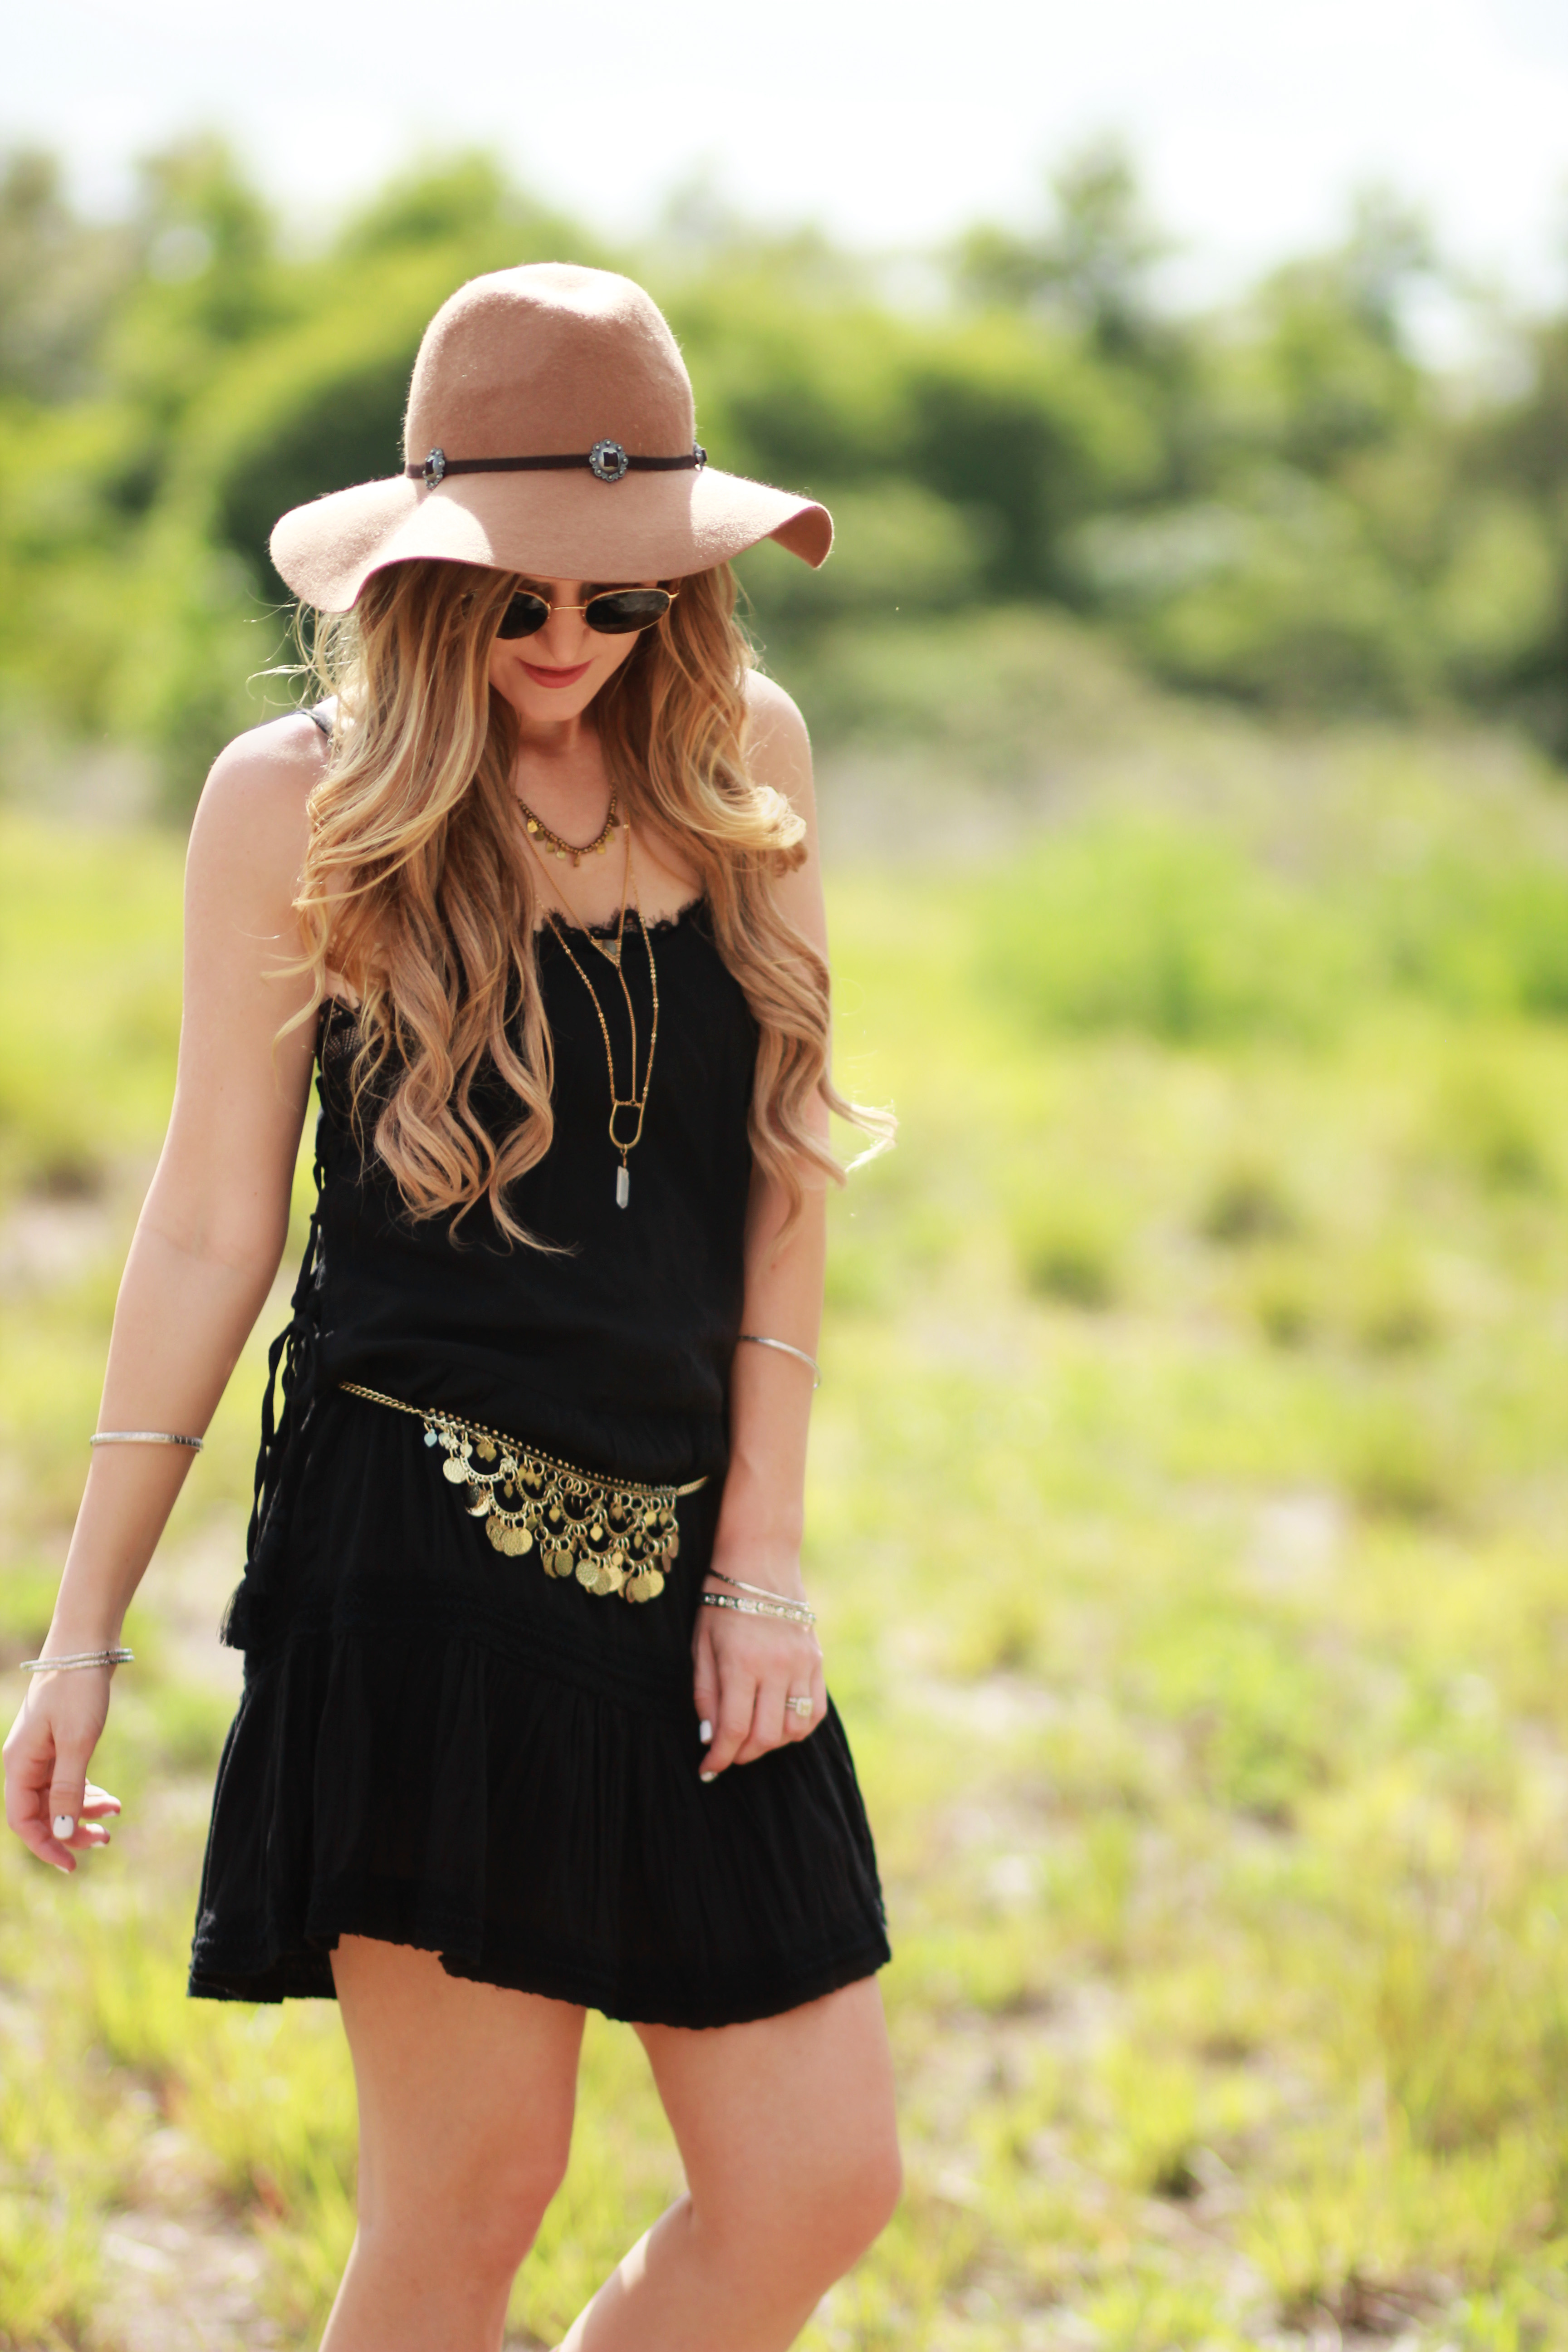 Aerie Festival Outfit Upbeat Soles Orlando Florida Style Blog